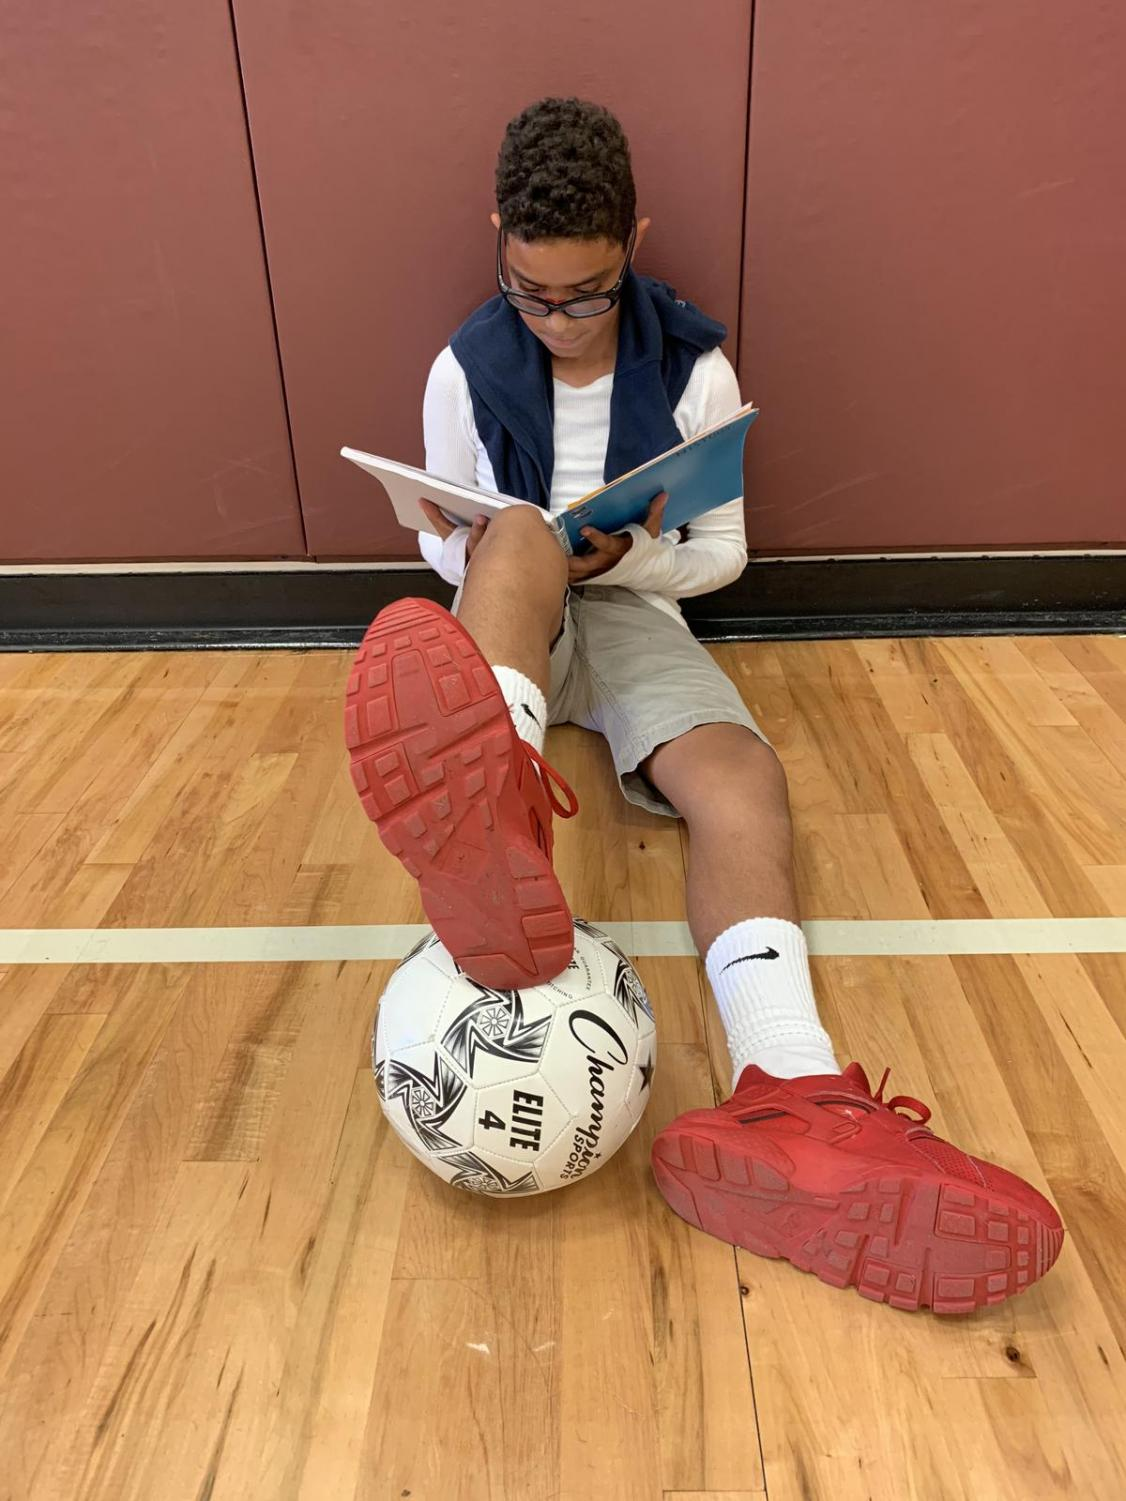 6th grader, Jedriel Perez, studying notes in the gym before he plays soccer.